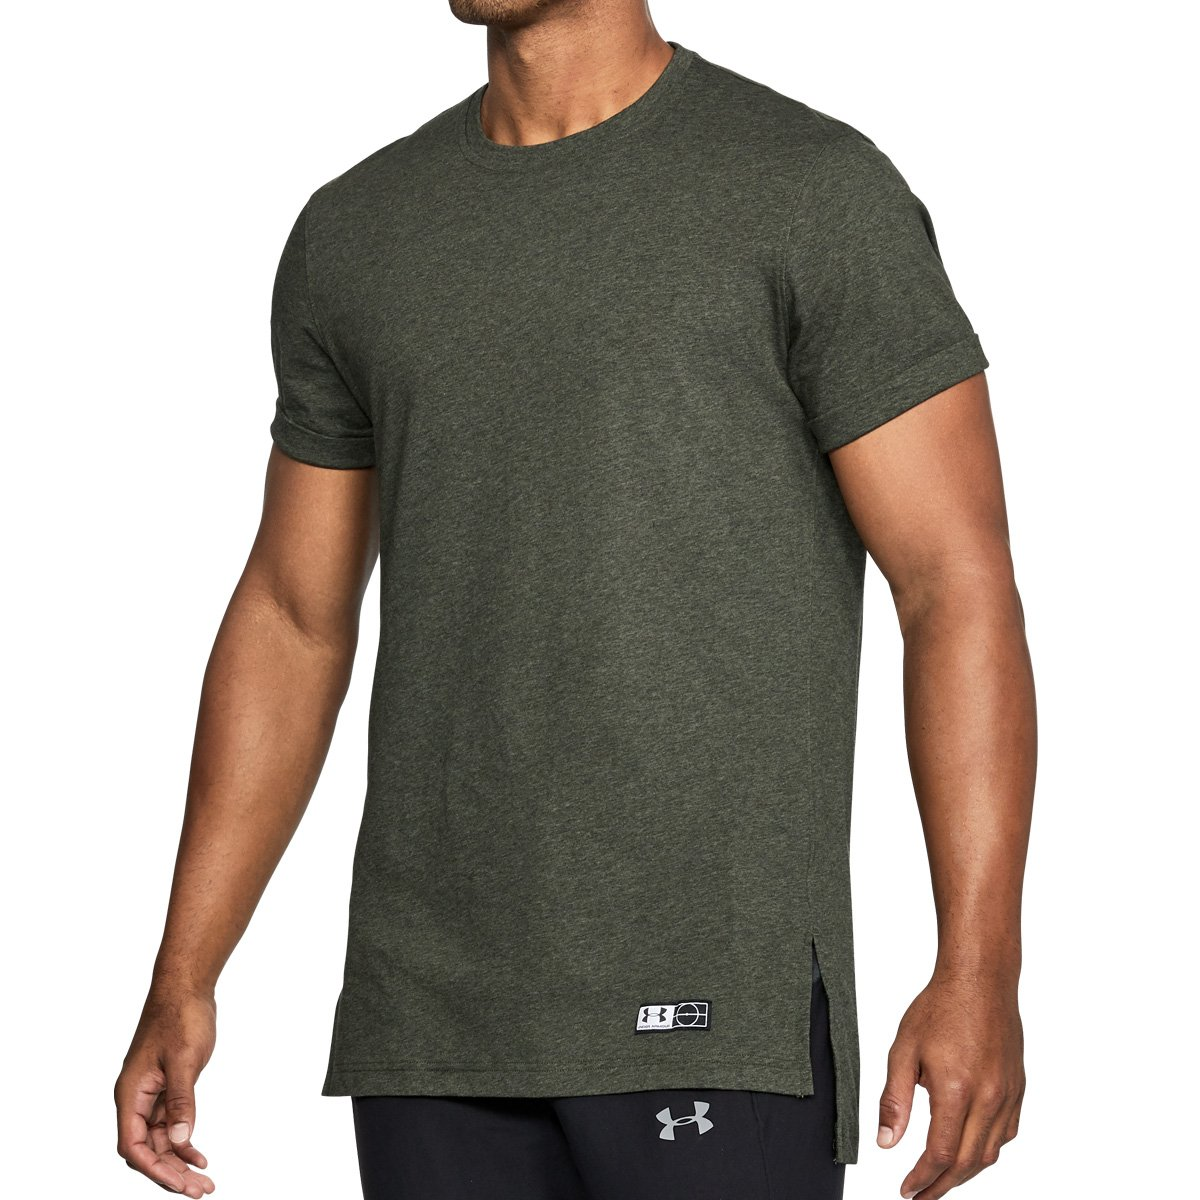 bef126e8e Under Armour Men Accelerate Off-Pitch T-Shirt: Amazon.co.uk: Clothing